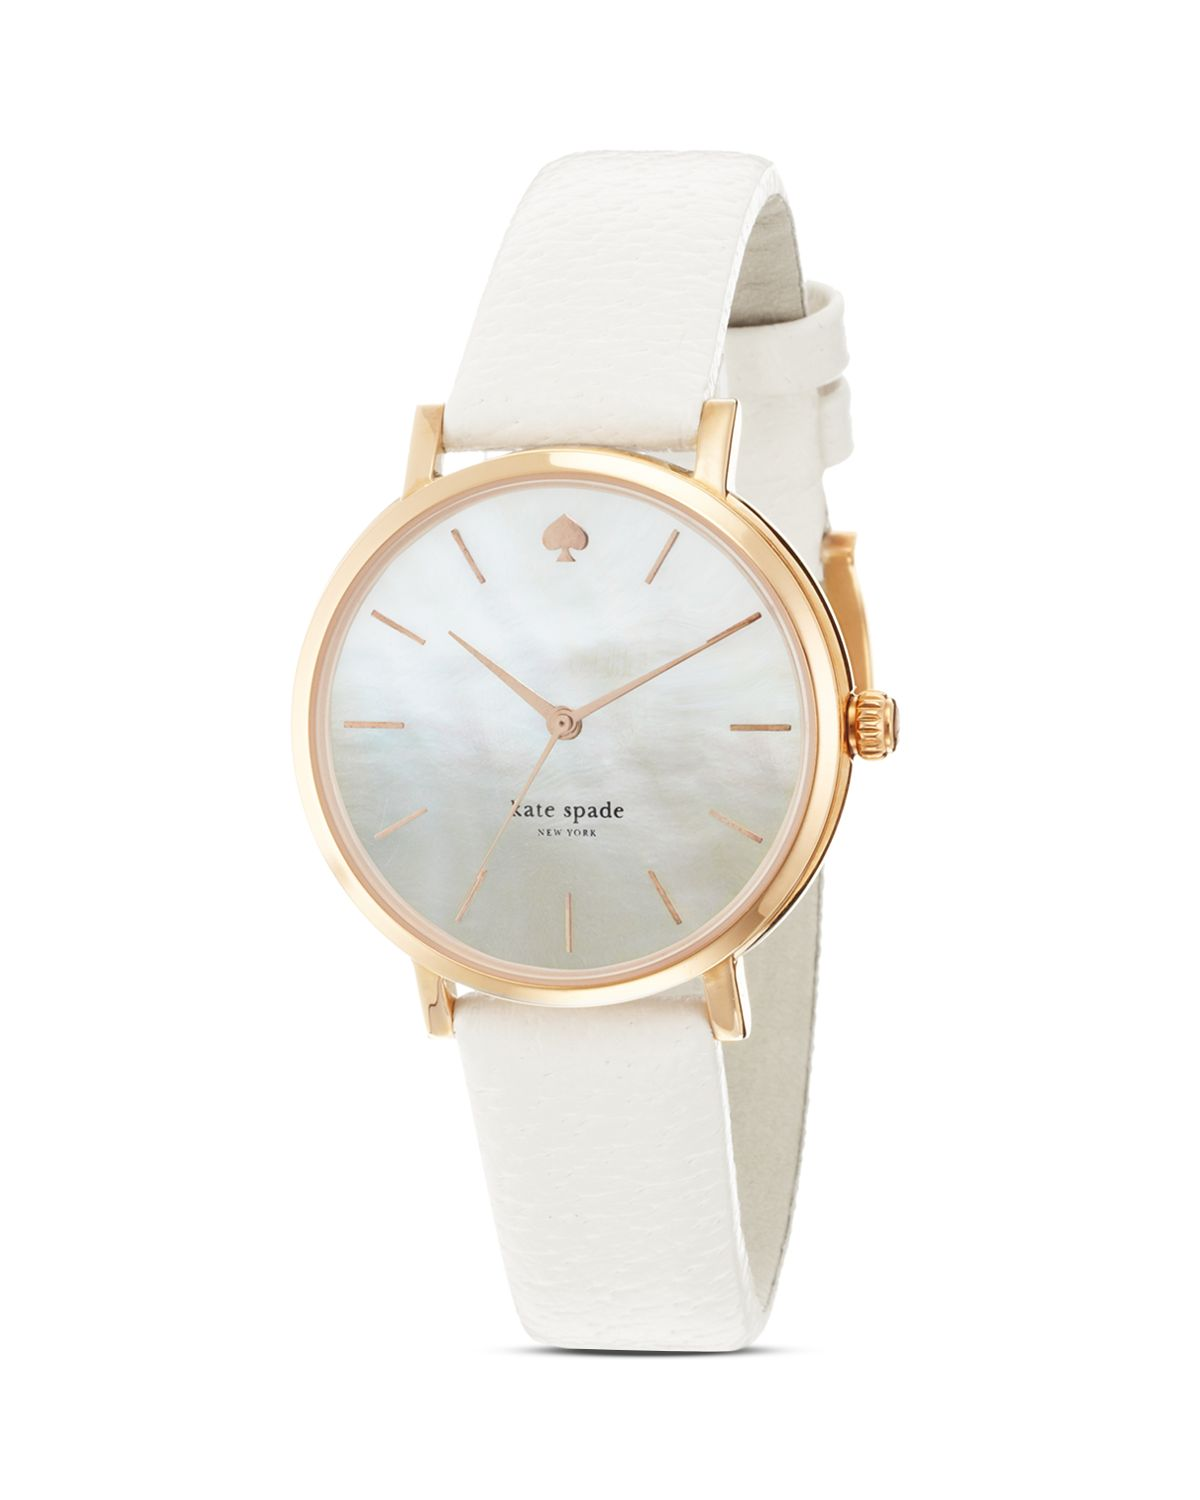 lyst kate spade new york rose gold metro strap watch 34mm in white. Black Bedroom Furniture Sets. Home Design Ideas